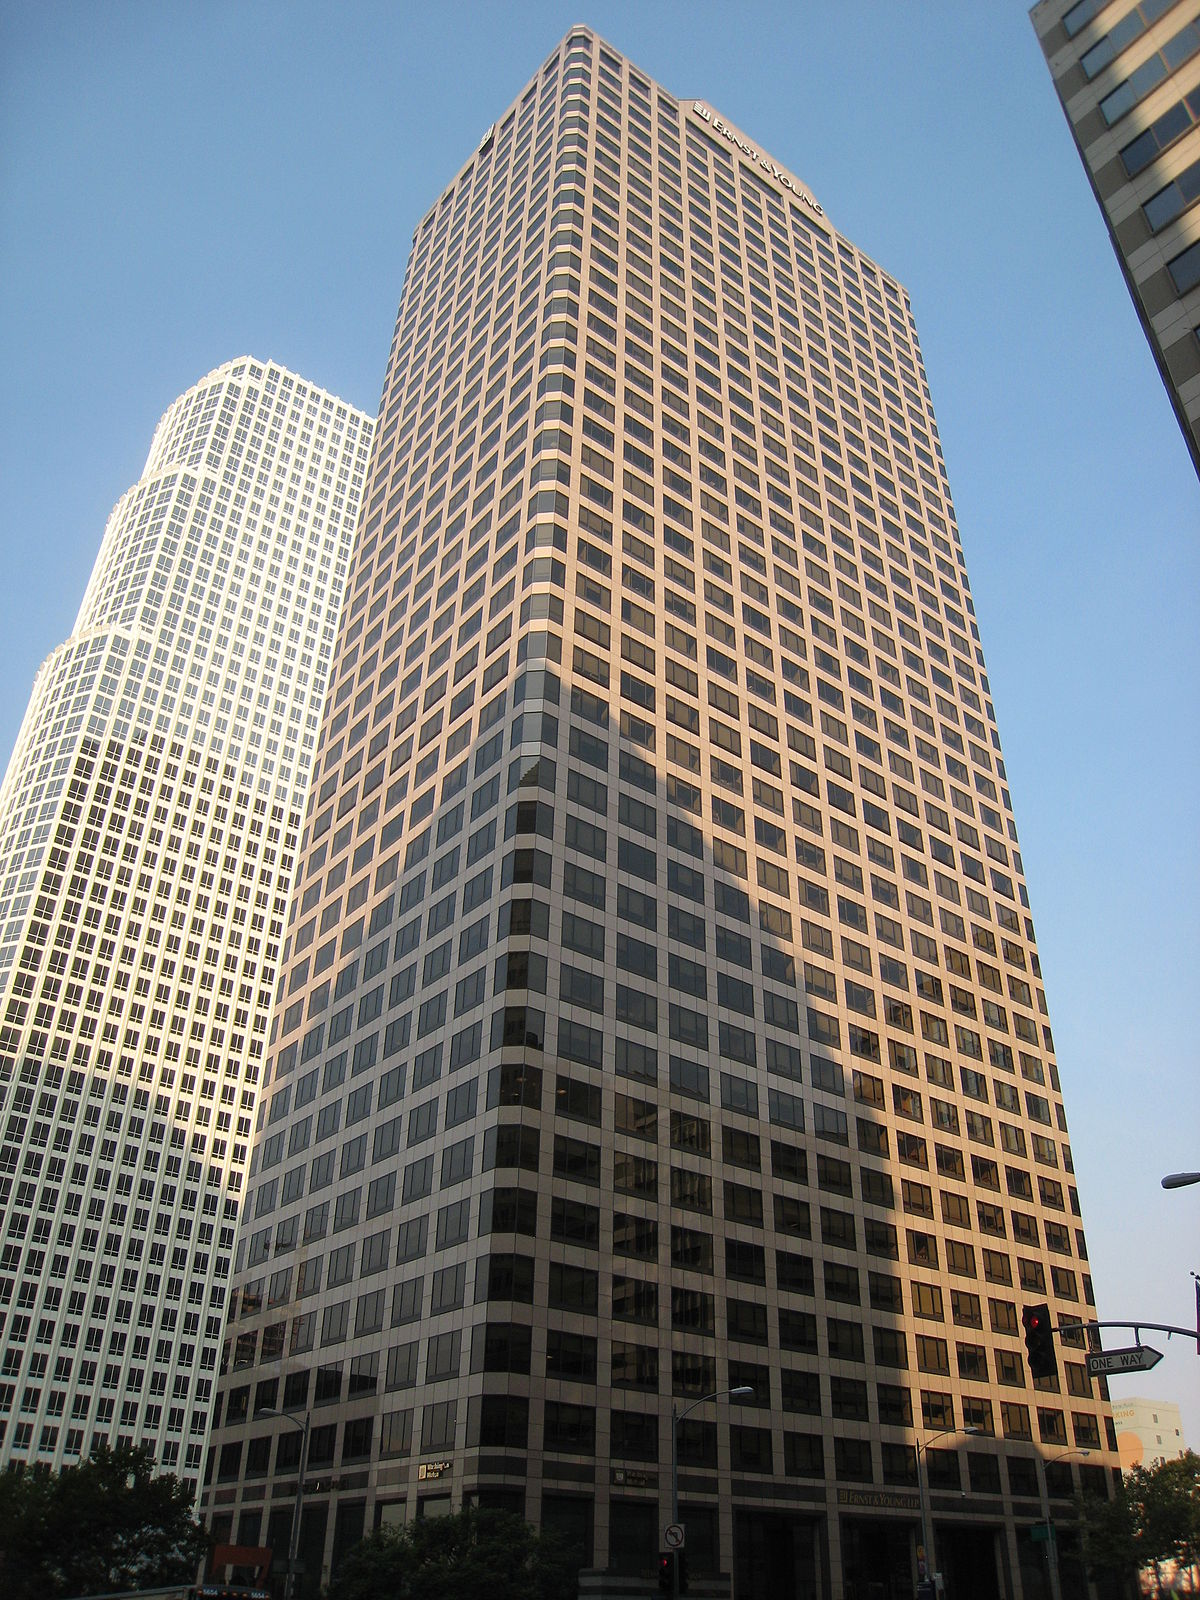 Tallest Building In New York >> Ernst & Young Plaza - Wikipedia